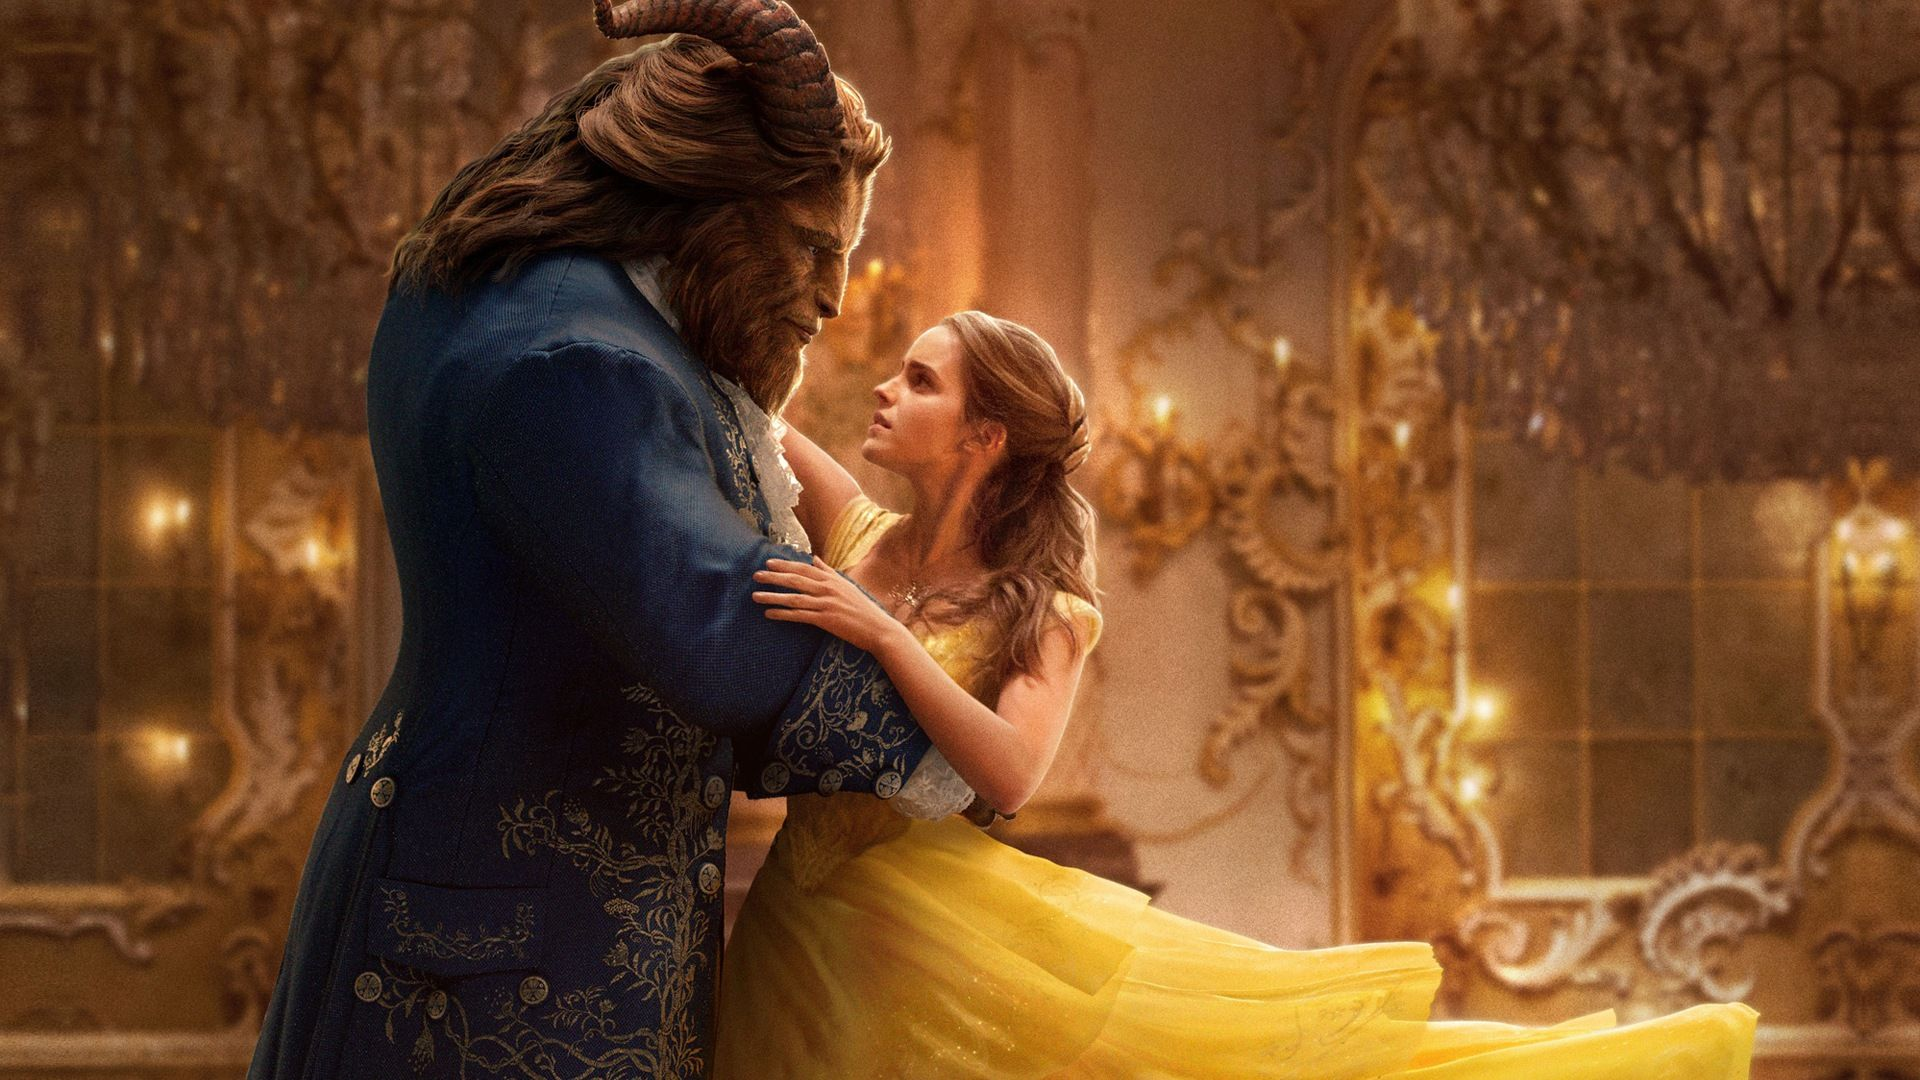 Beauty And The Beast Movie Wallpaper Hd DOWNLOAD FREE HD